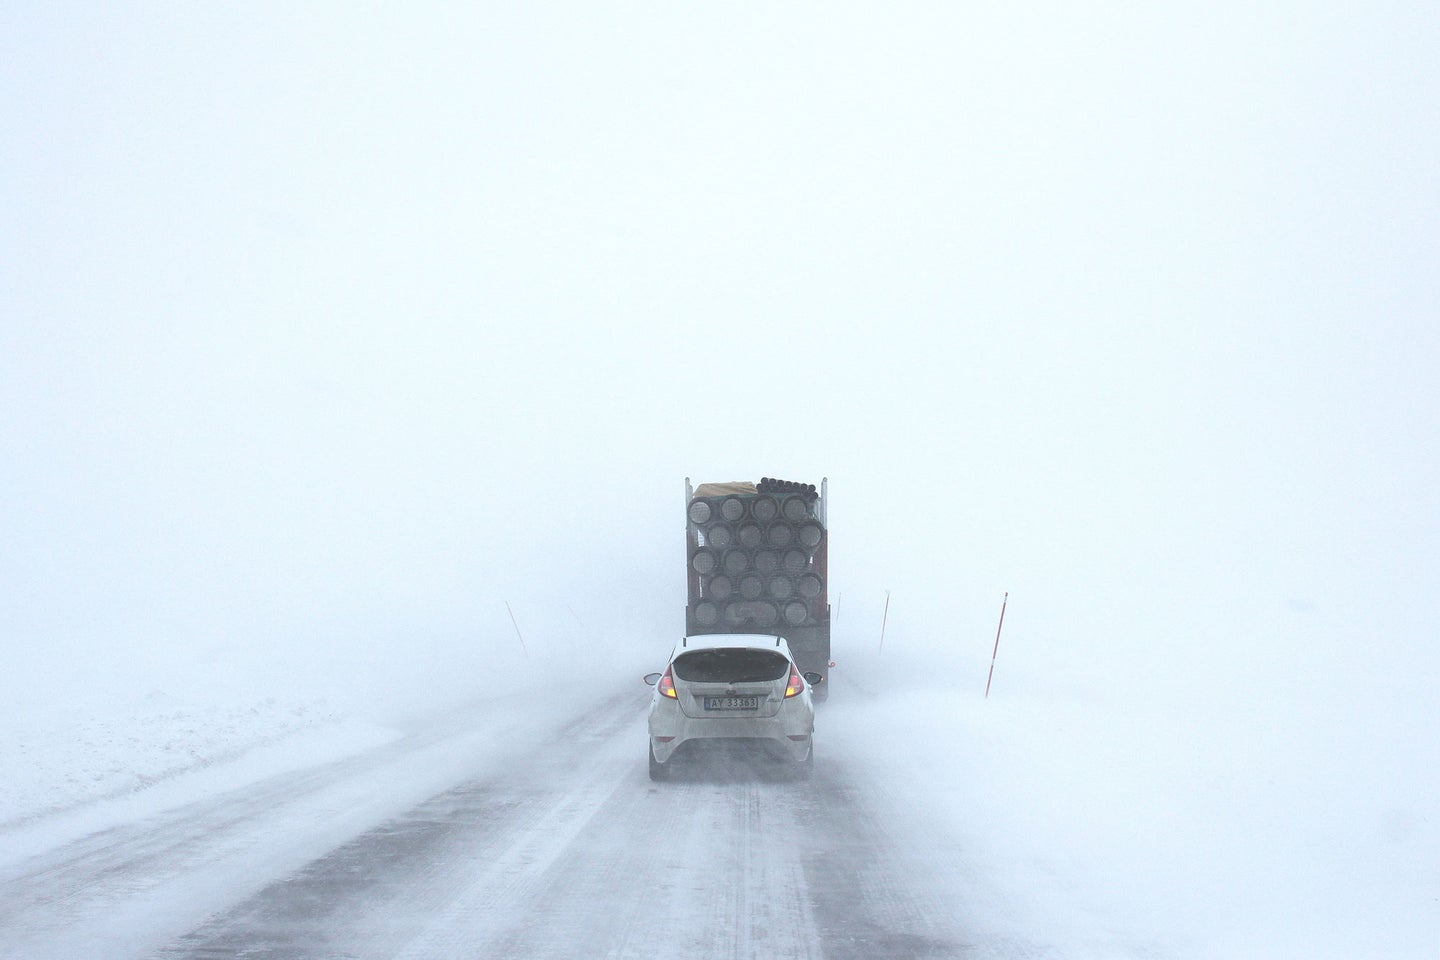 Car driving on a snowy road with the best snow tires.